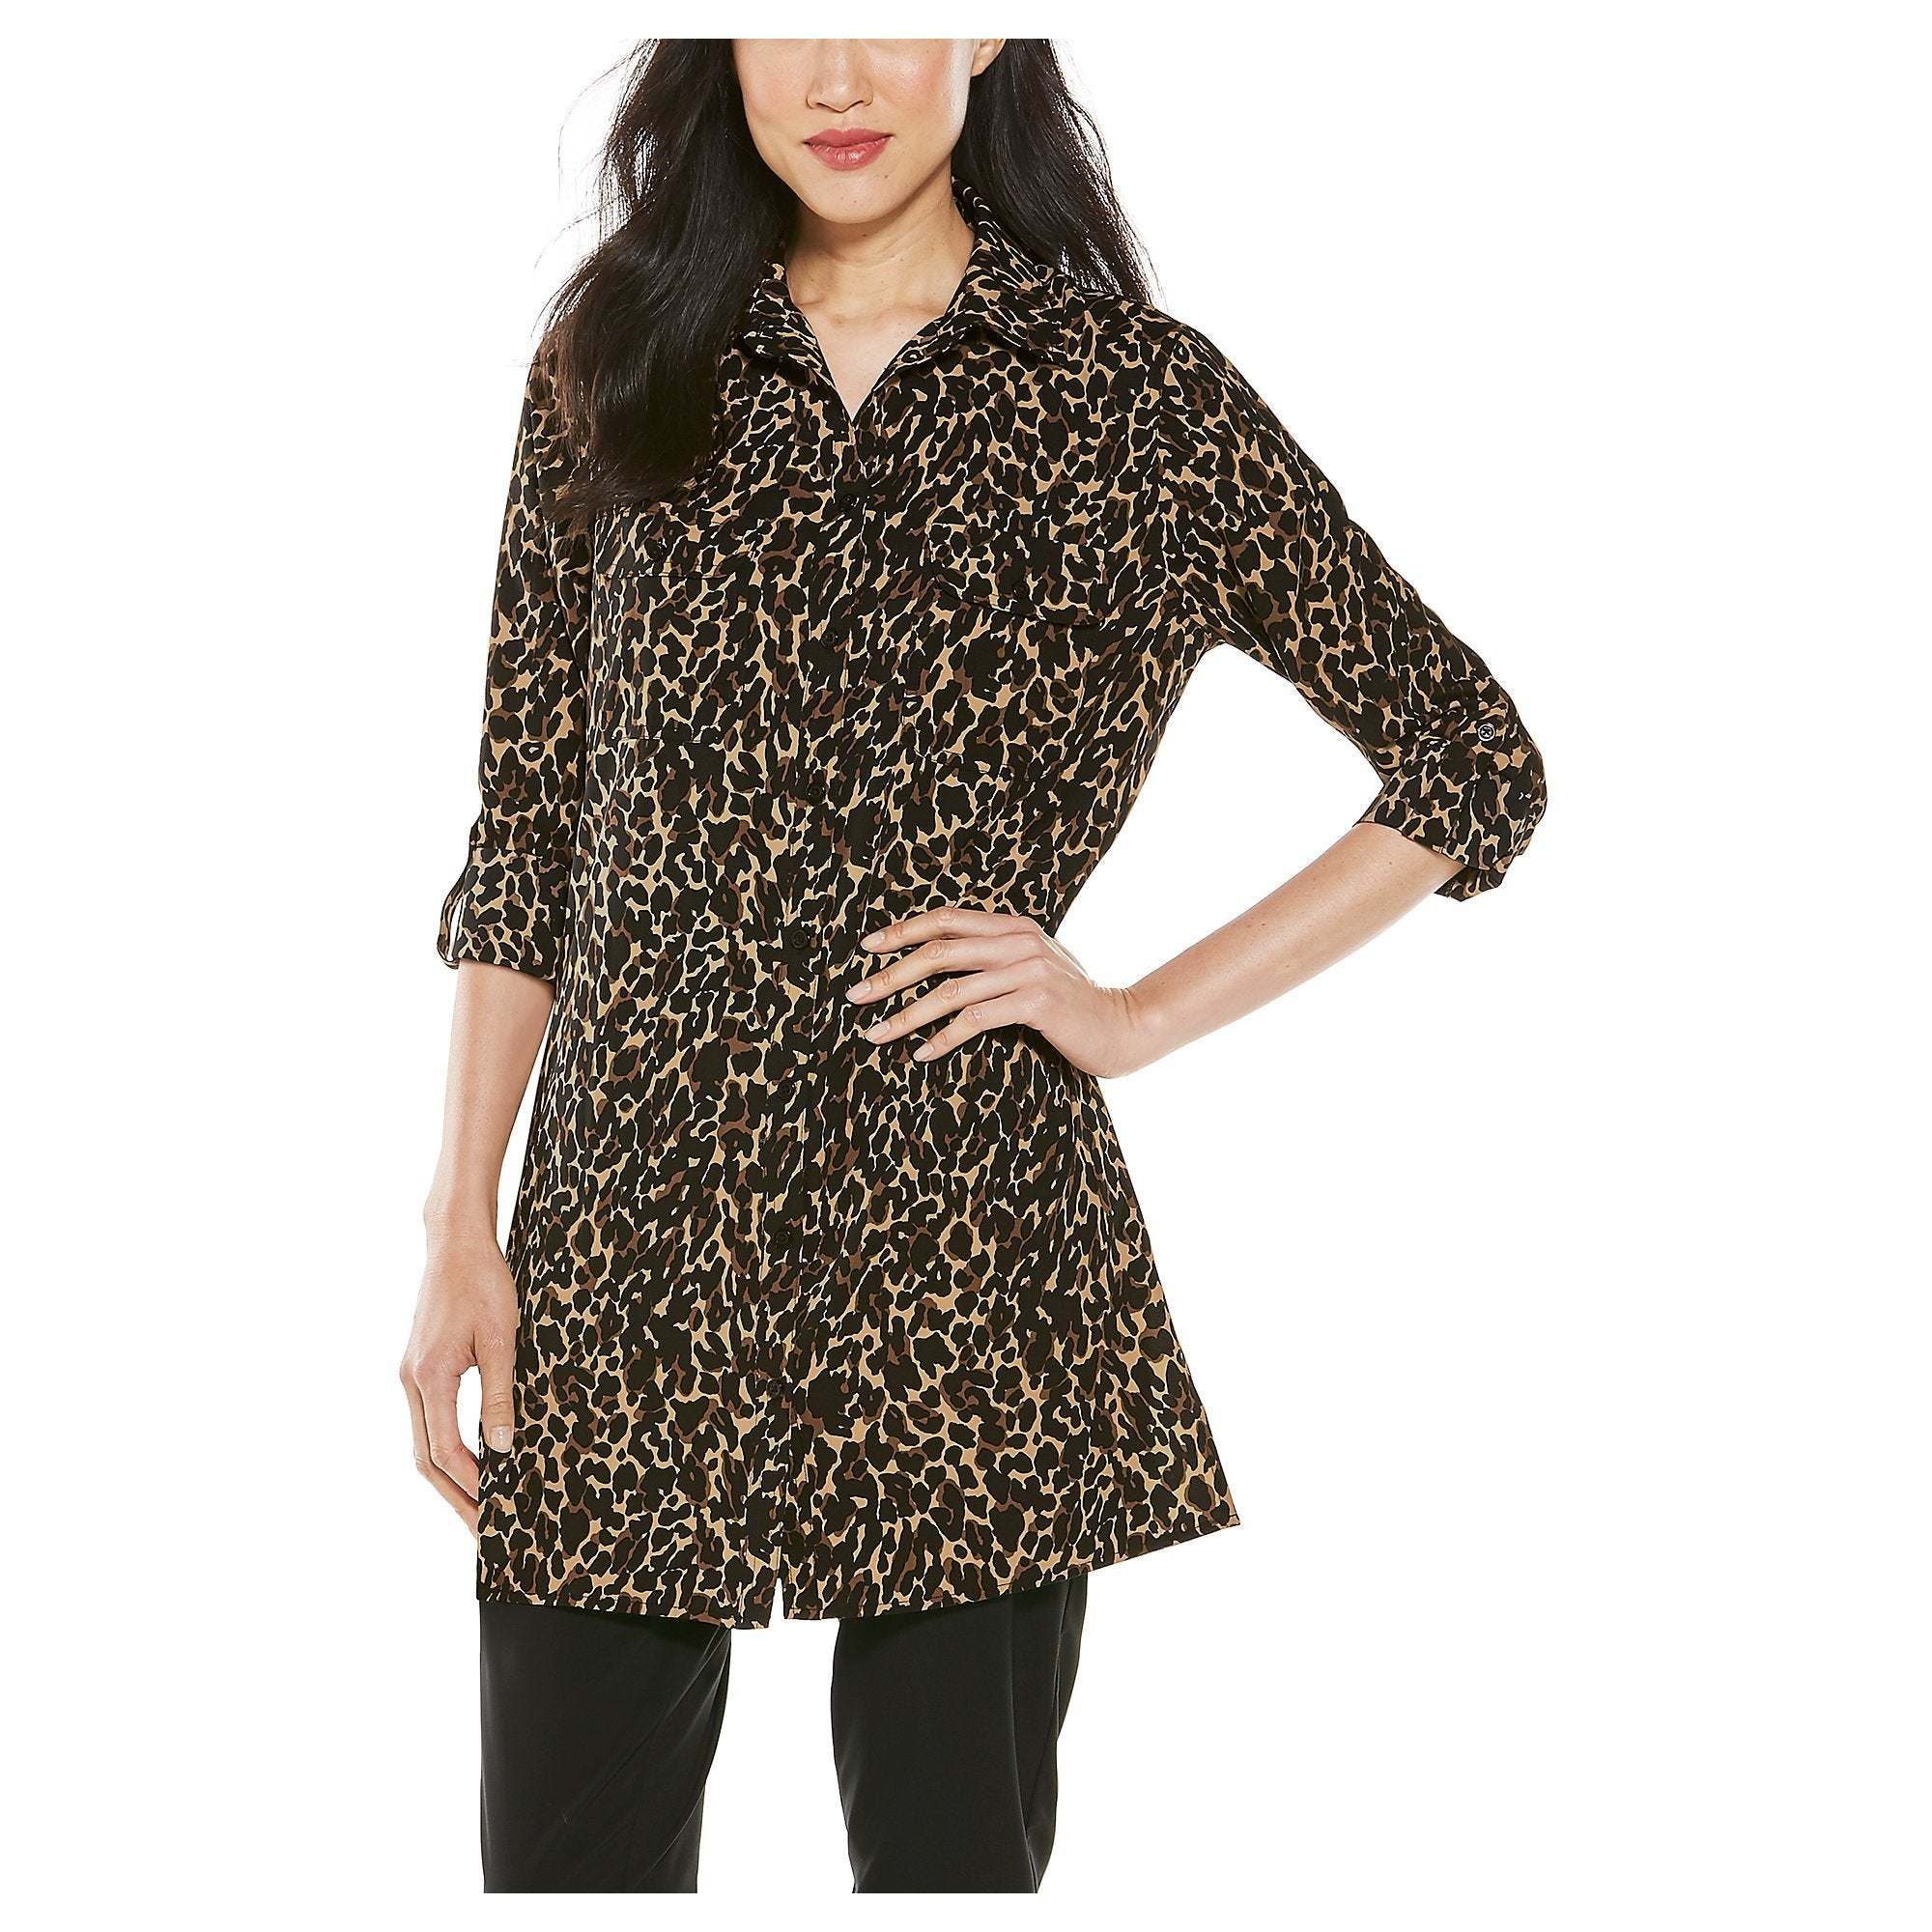 SANTORINI TUNIC LEOPARD (SIZE XS only and 2XL) - Molly's! A Chic and Unique Boutique